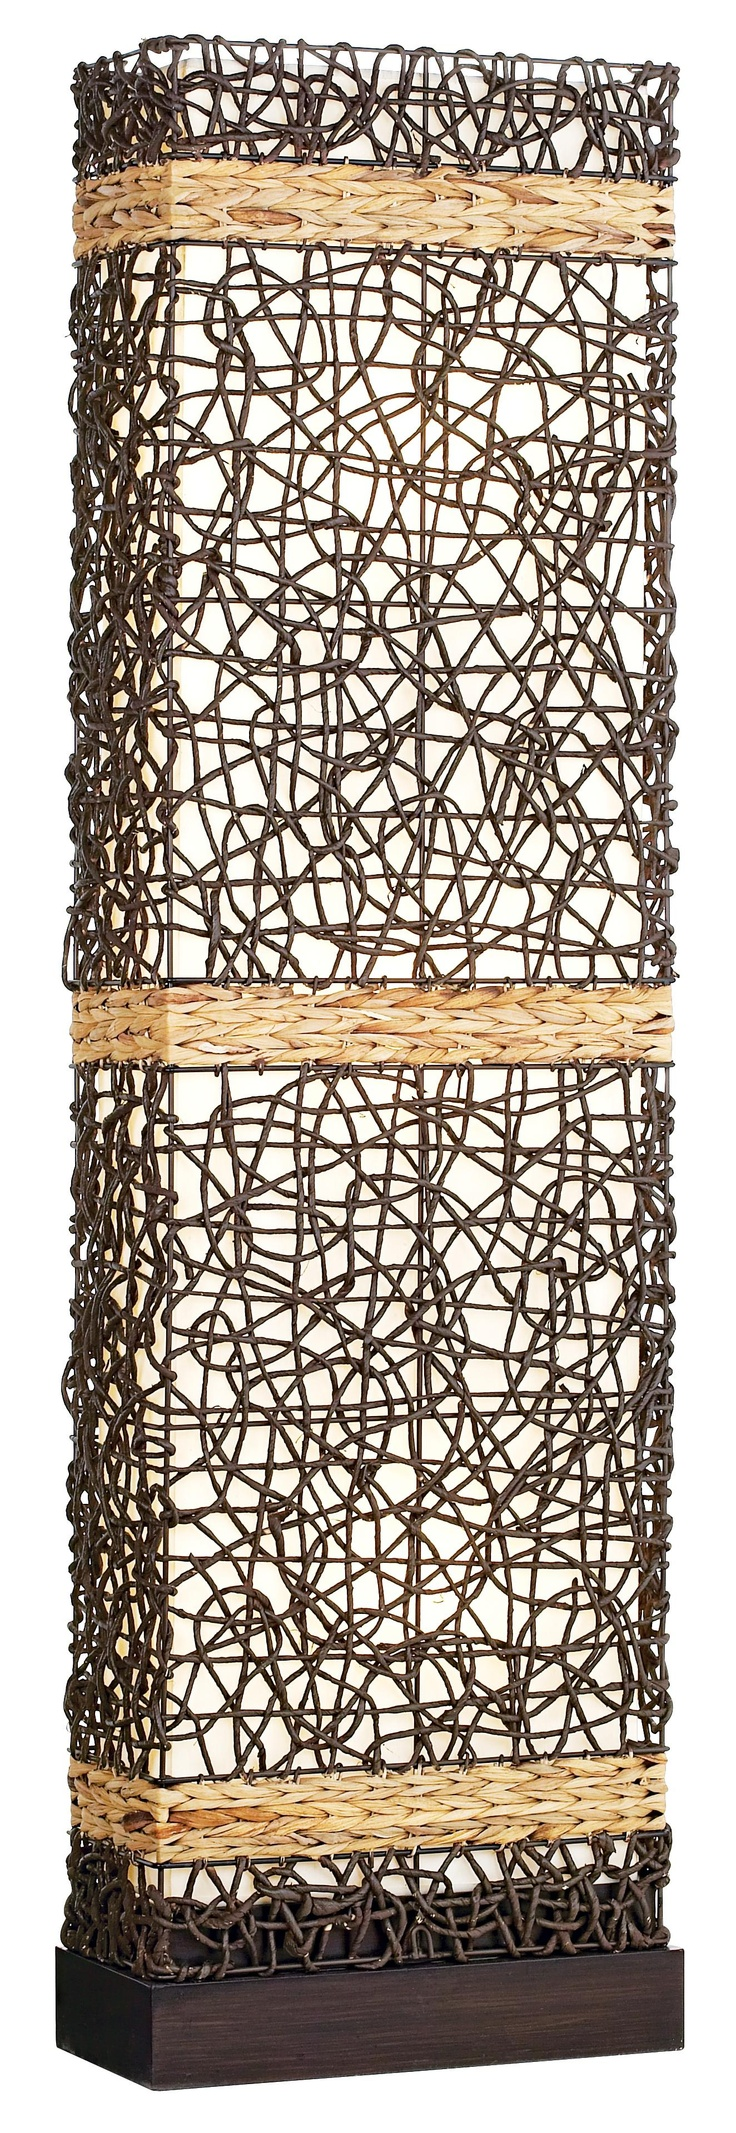 12 best woven lamps images on pinterest rattan wicker and floor kathy ireland gallery seagrass wicker weave floor lamp mozeypictures Image collections